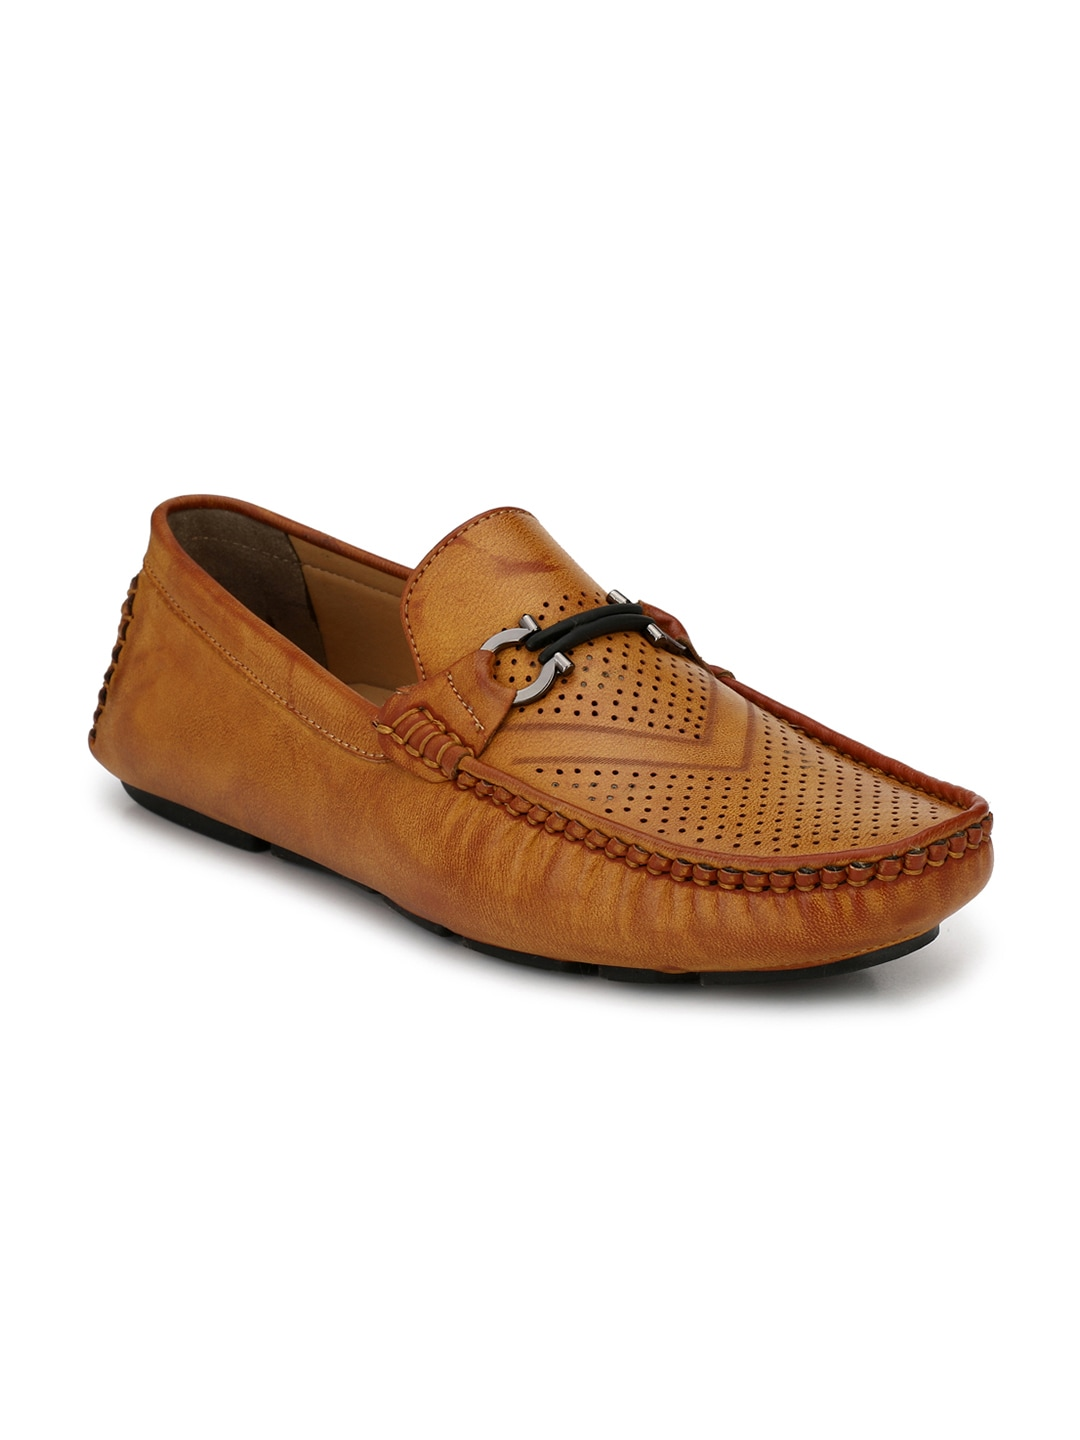 8ff74e178e0c Casual Shoes For Men - Buy Casual   Flat Shoes For Men